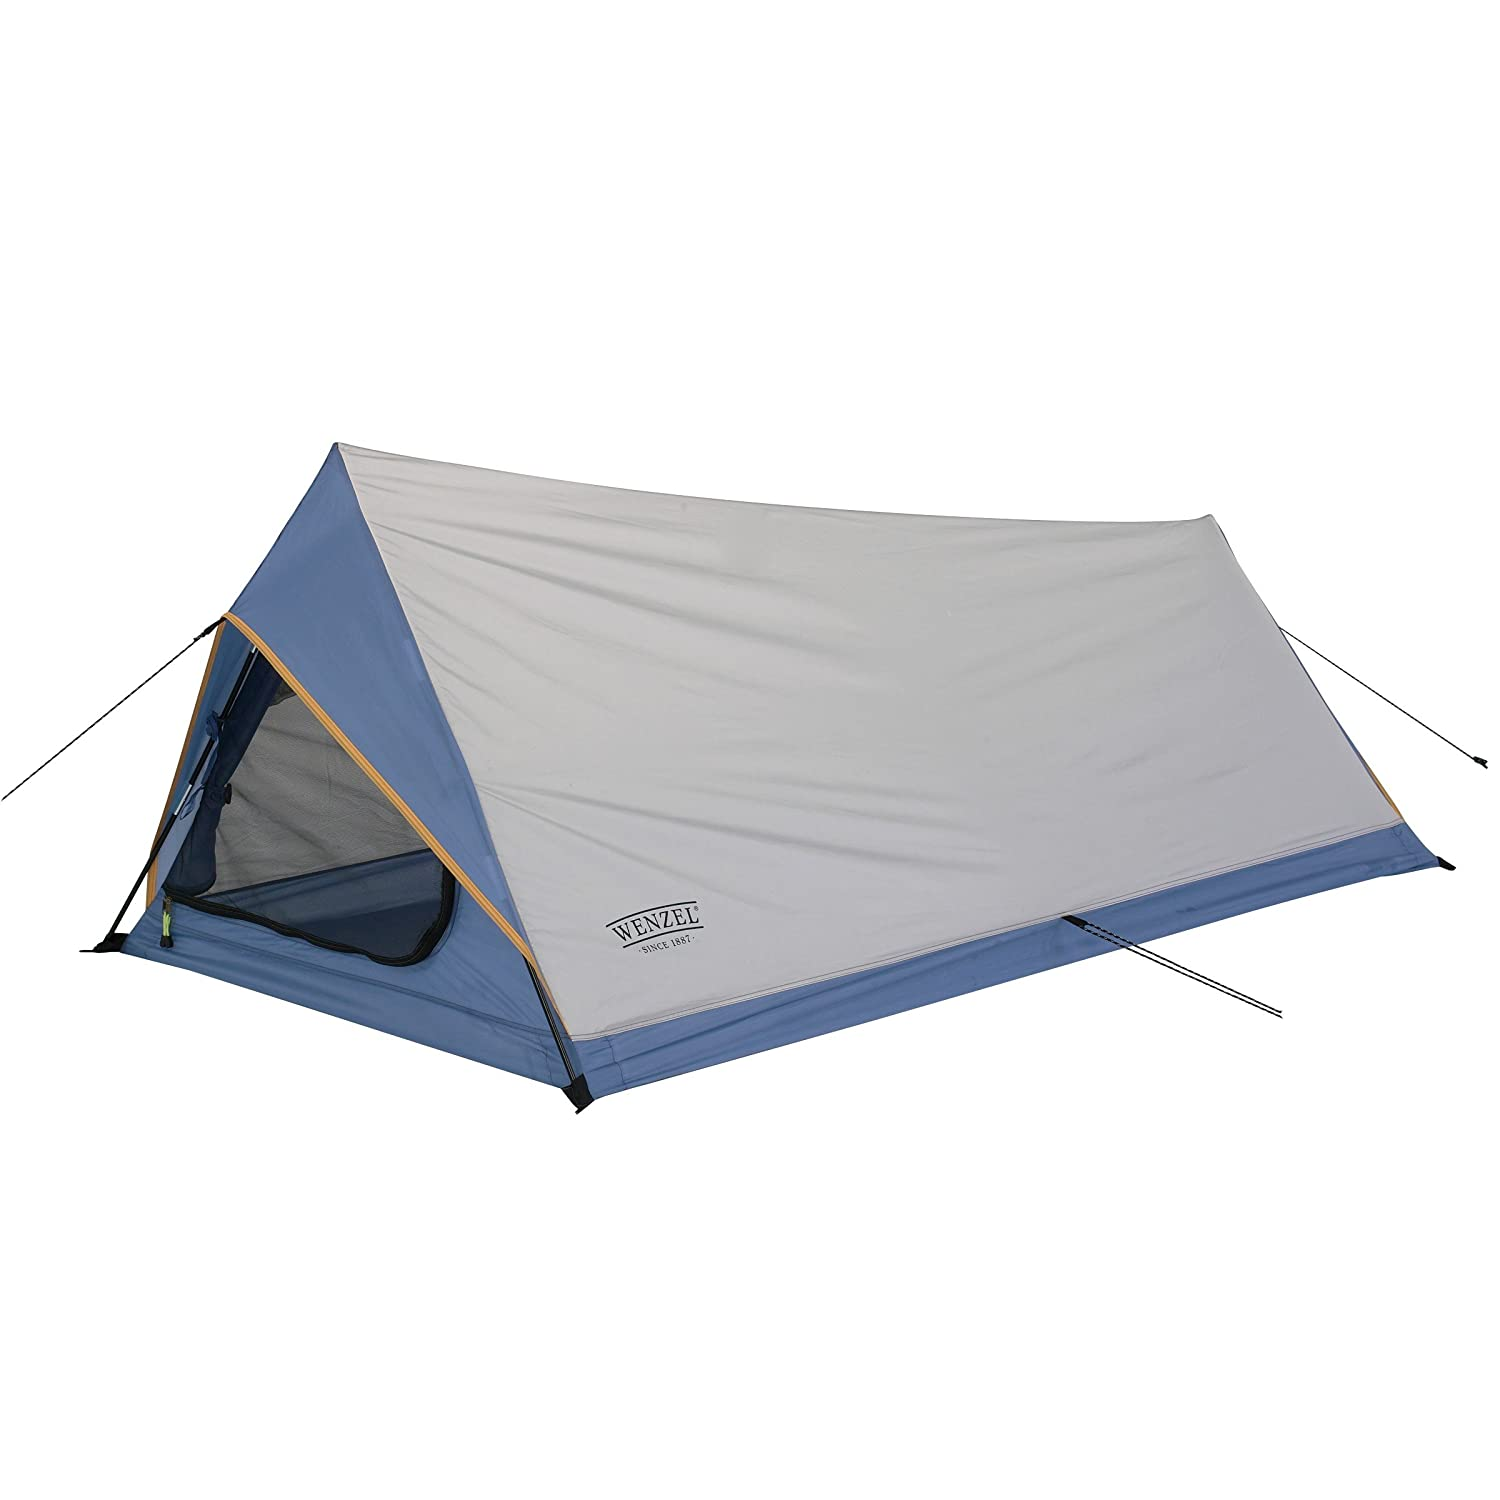 Amazon.com  Wenzel Current Hiker Two-Person Tent  Family Tents  Sports u0026 Outdoors  sc 1 st  Amazon.com & Amazon.com : Wenzel Current Hiker Two-Person Tent : Family Tents ...